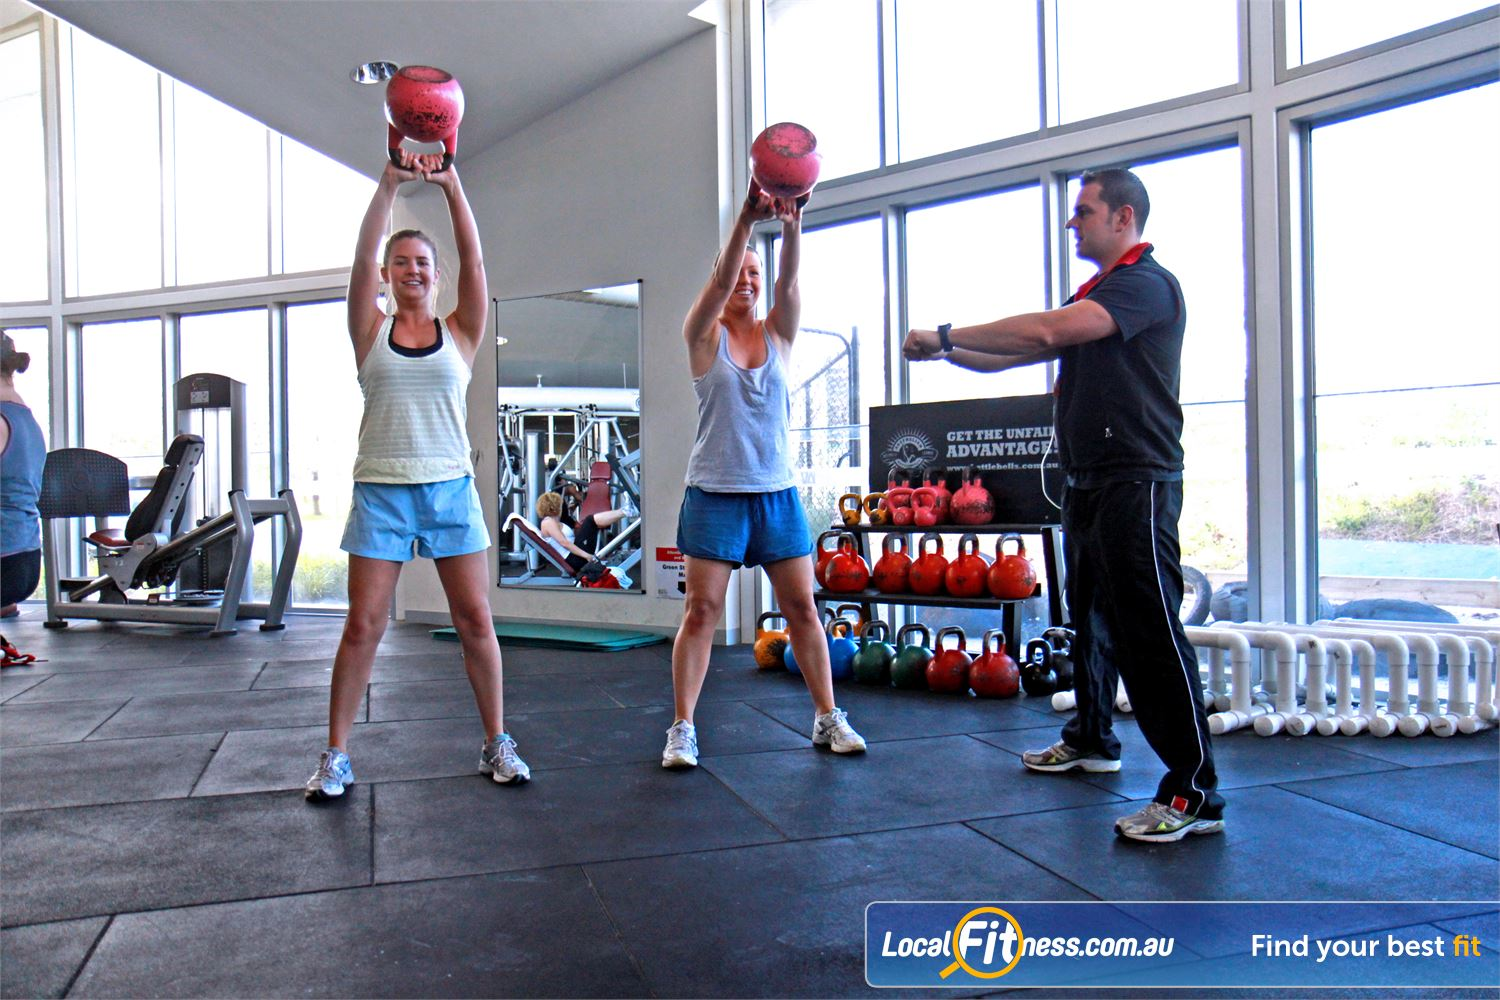 Ascot Vale Leisure Centre Ascot Vale Vary your workout with Kettle bell training in our Ascot Vale HIIT gym.